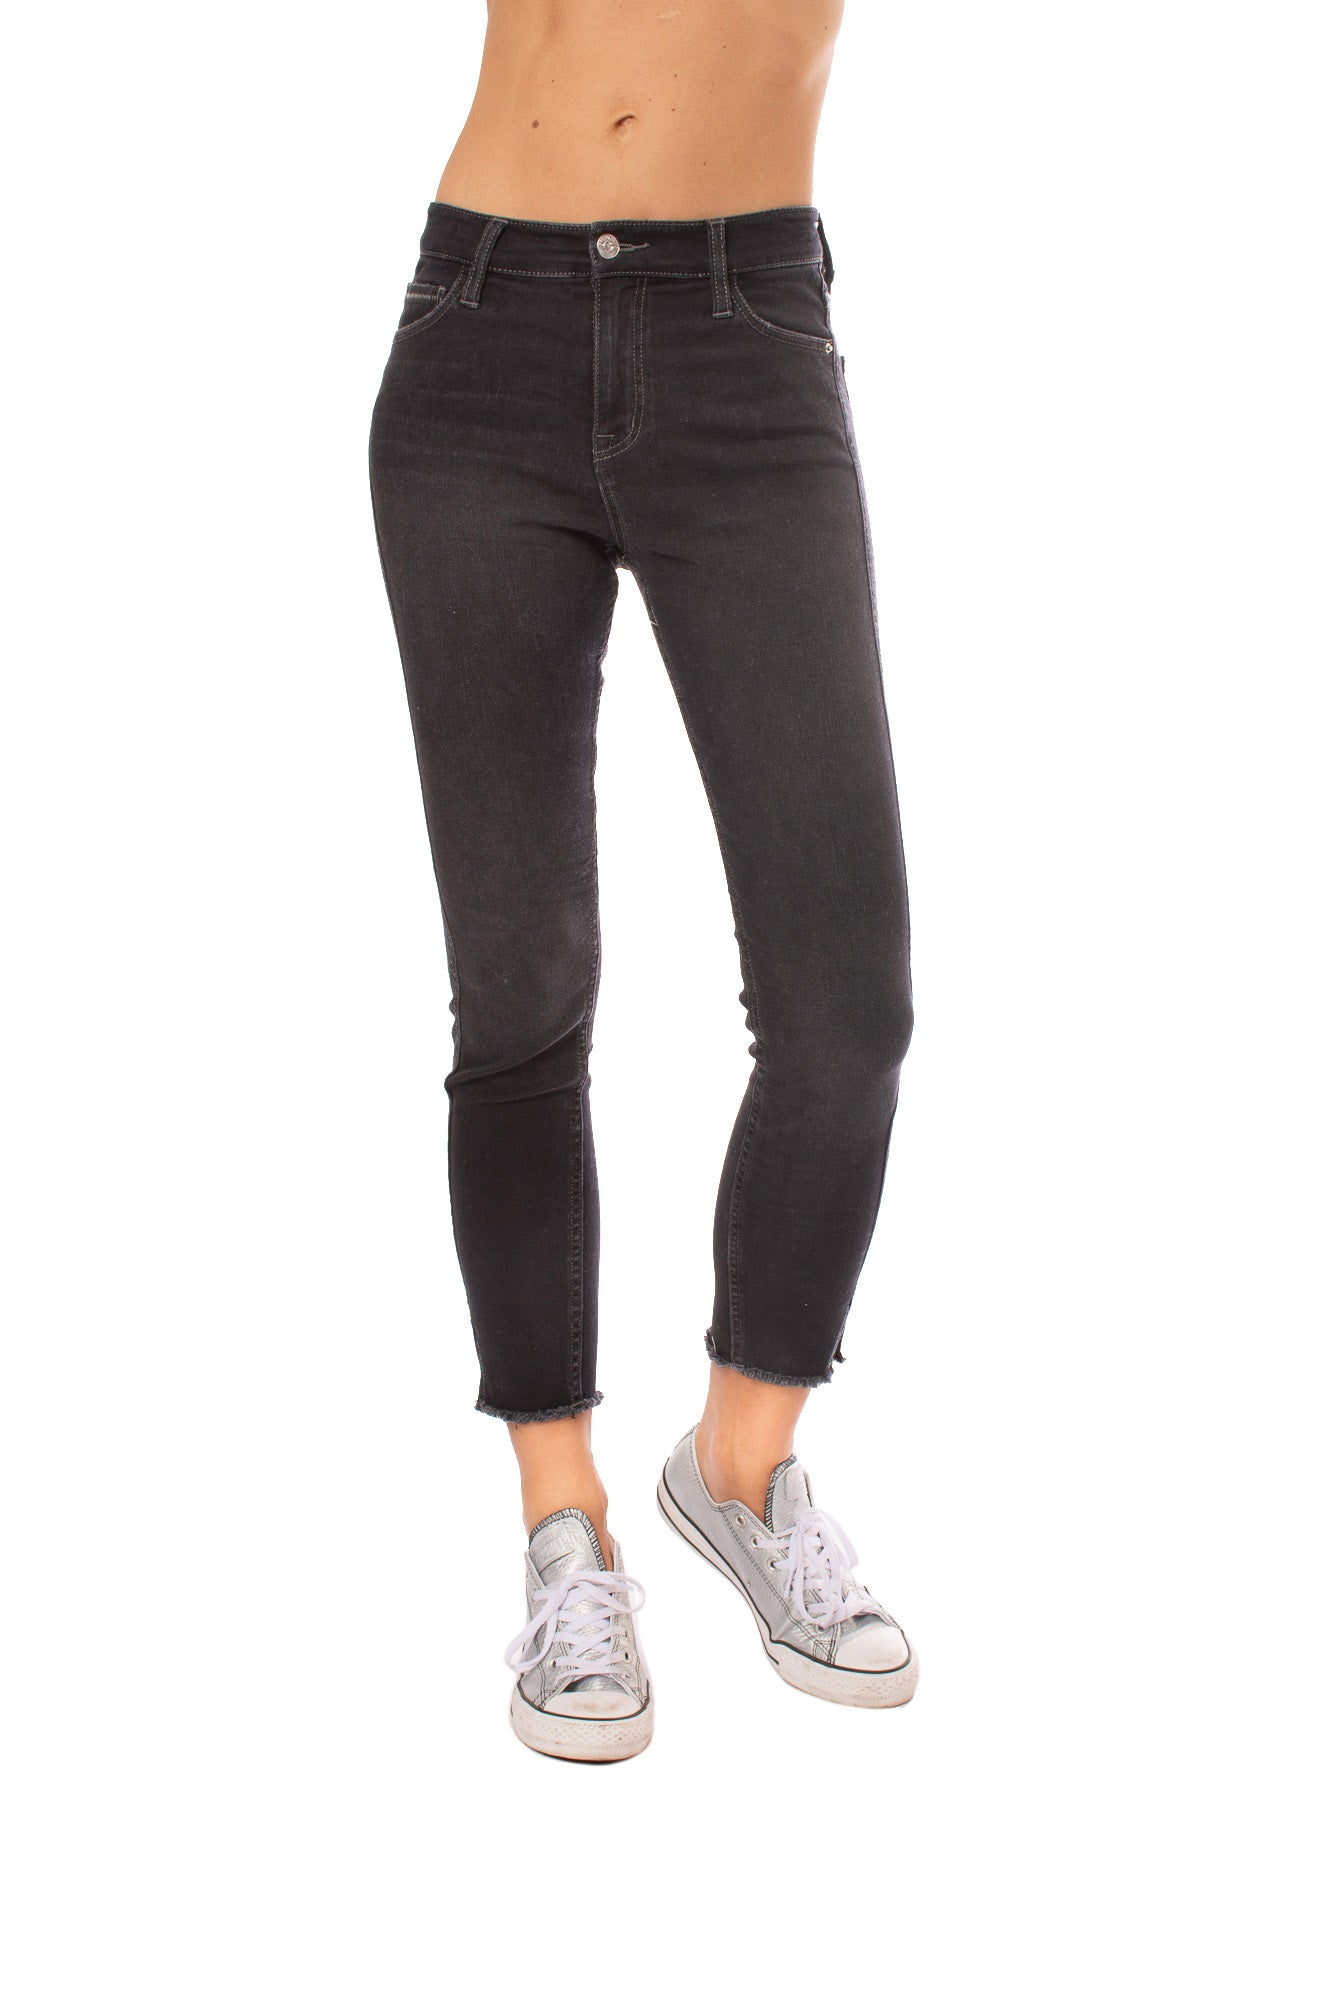 Stonefield - Conrad High Rise Ankle Skinny Jeans (CONRAD, Roby Black)